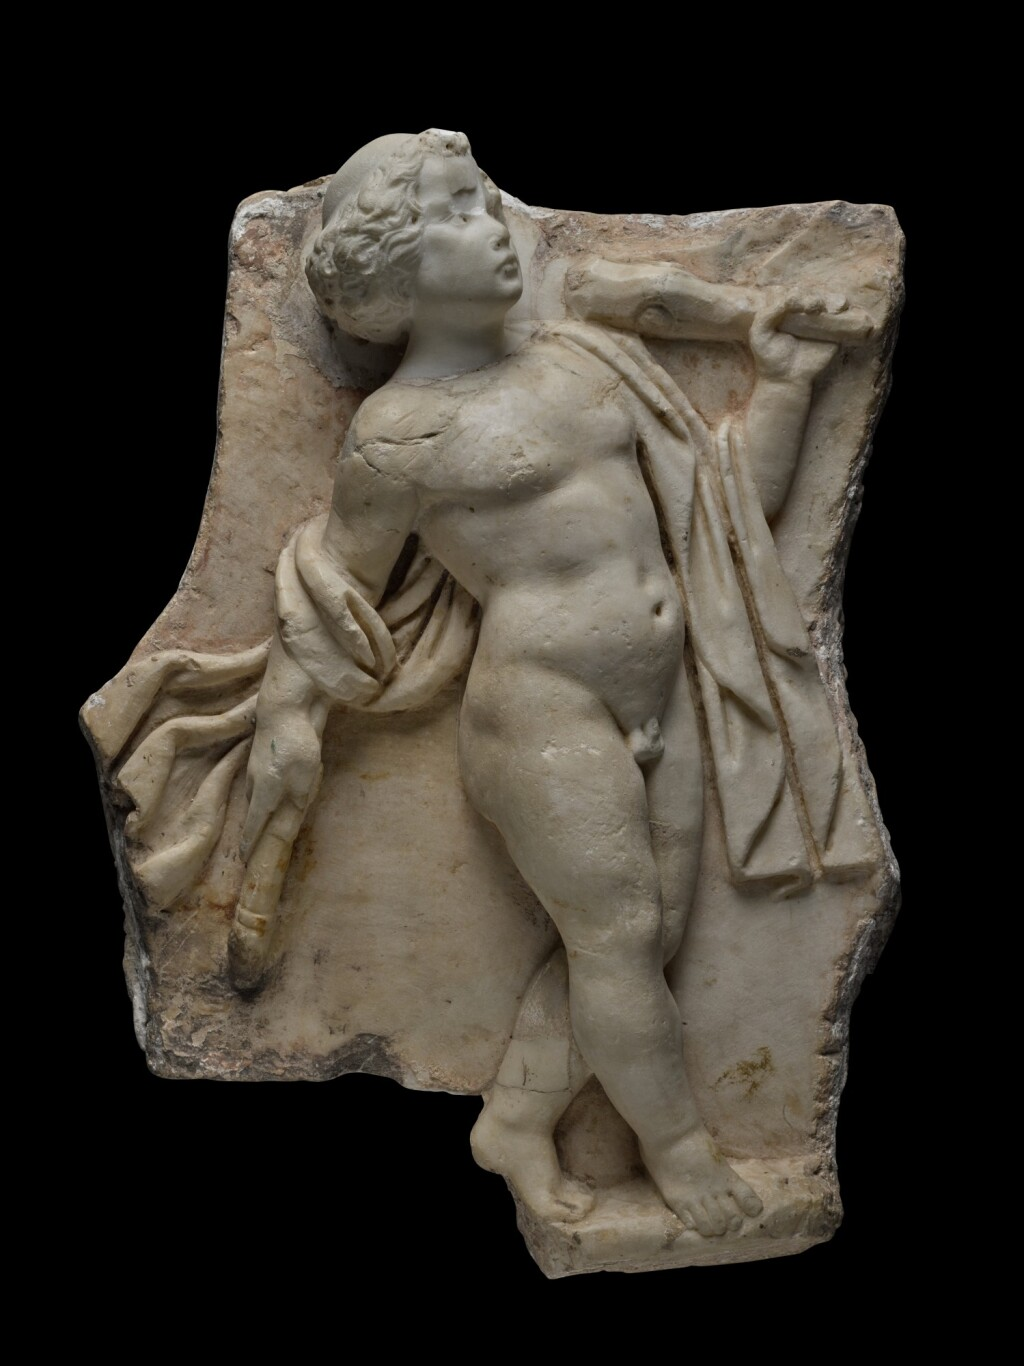 A ROMAN MARBLE SARCOPHAGUS RELIEF FRAGMENT, 2ND CENTURY A.D.